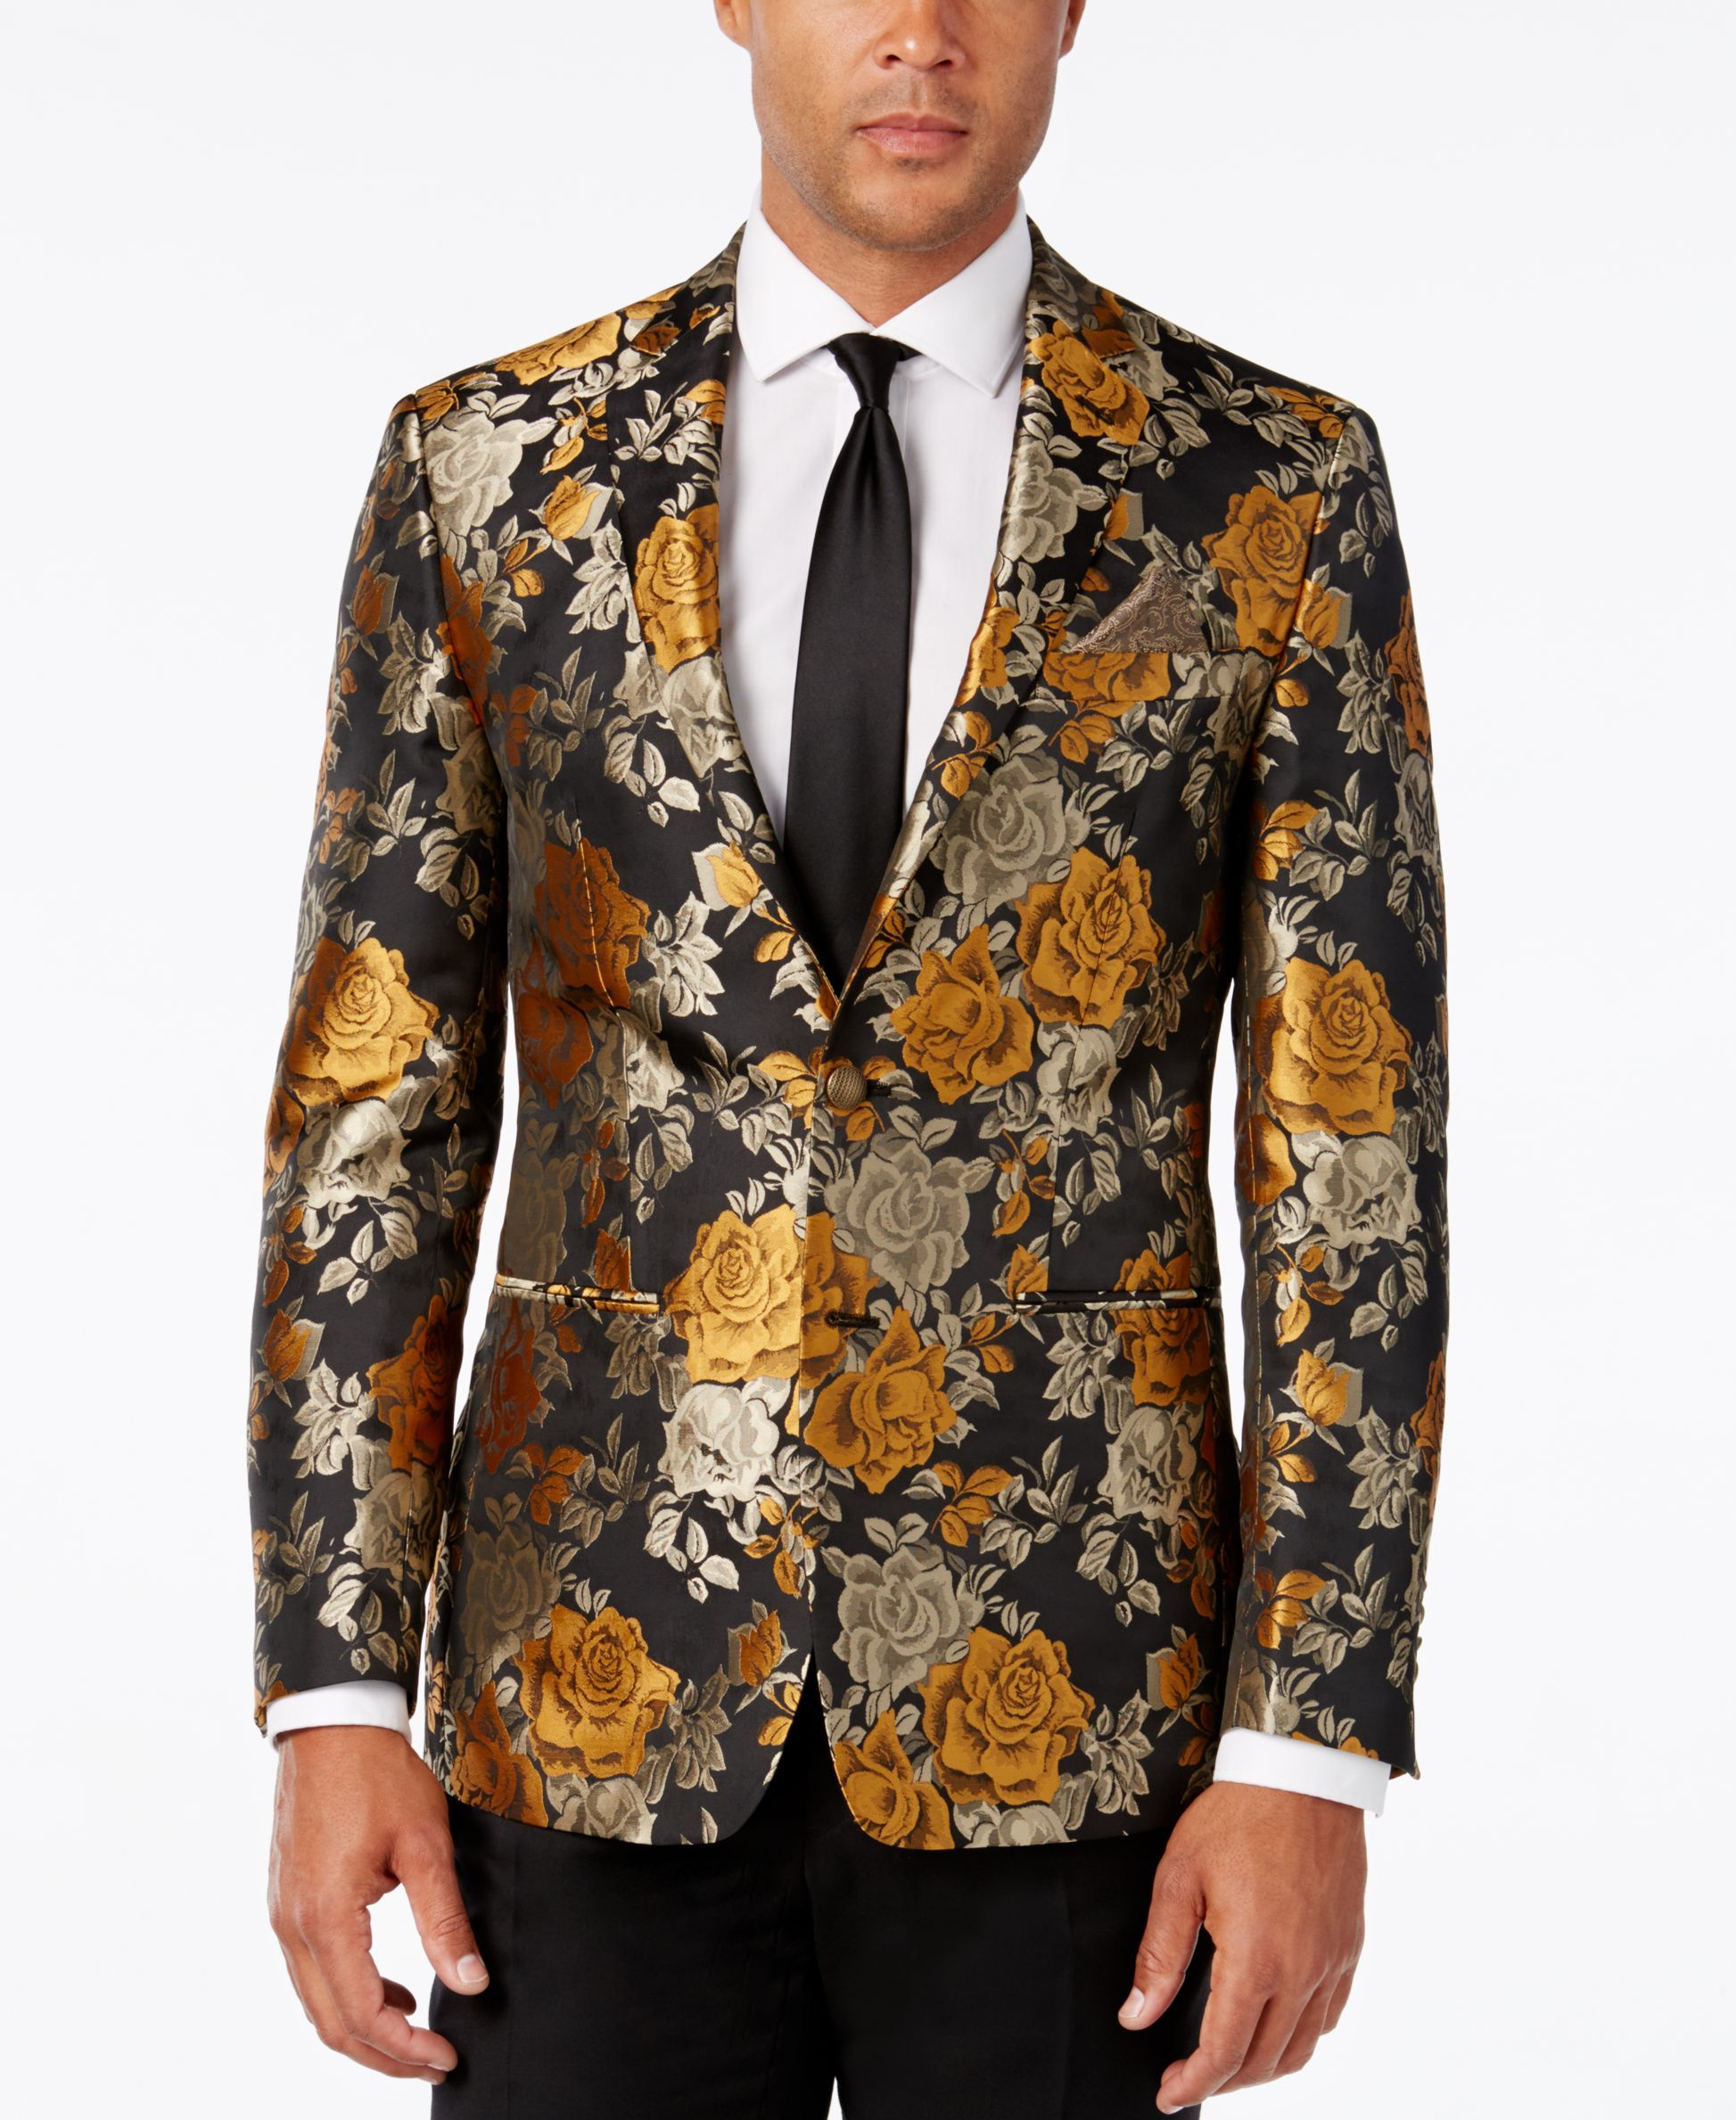 dff51b0b32b Tallia Men s Slim-Fit Black and Gold Floral Evening Jacket